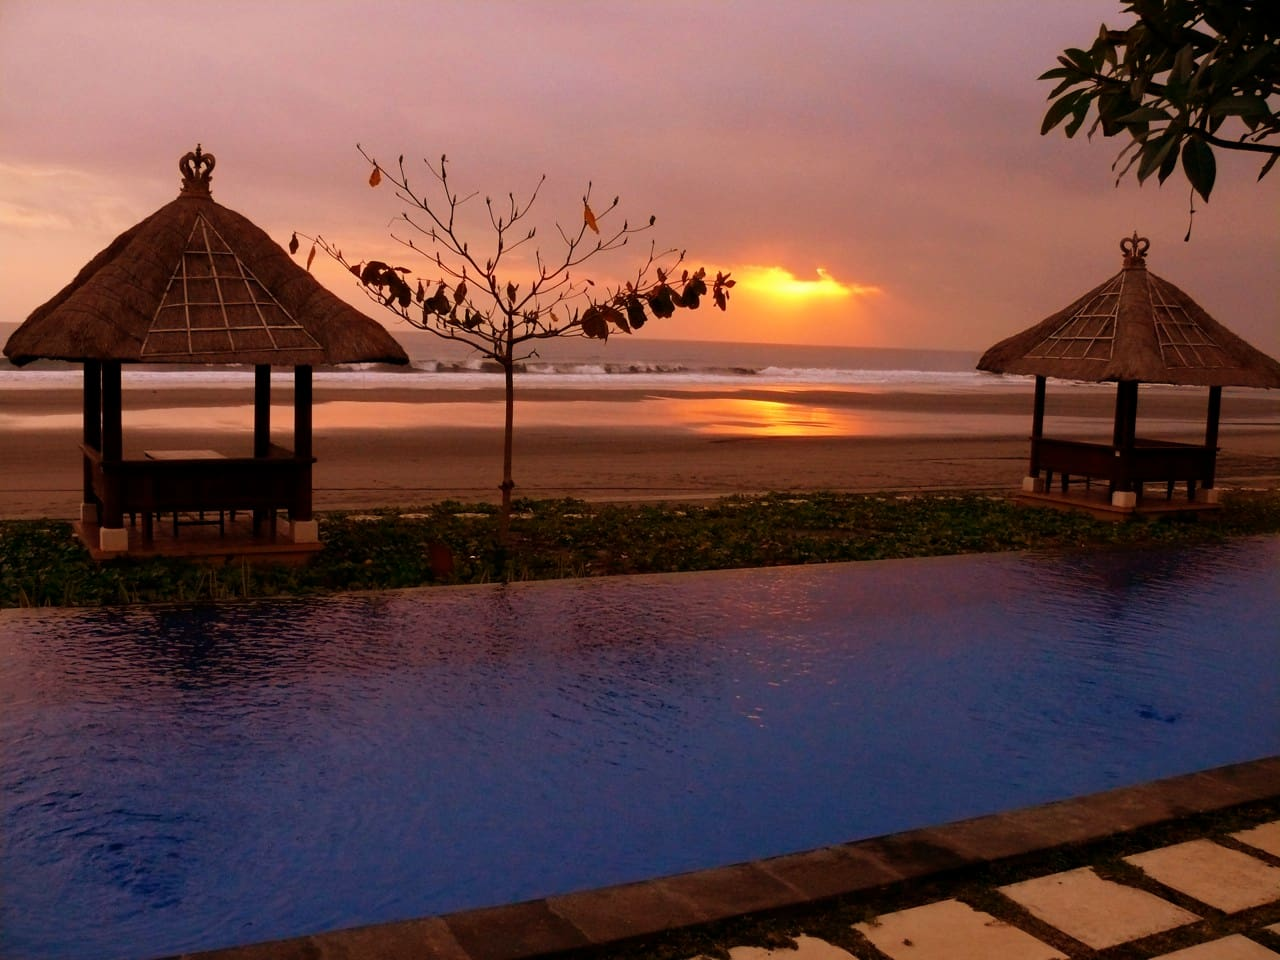 Sunset over the infinity pool in front of your private villa on Soka Beach. How relaxing is this scene?